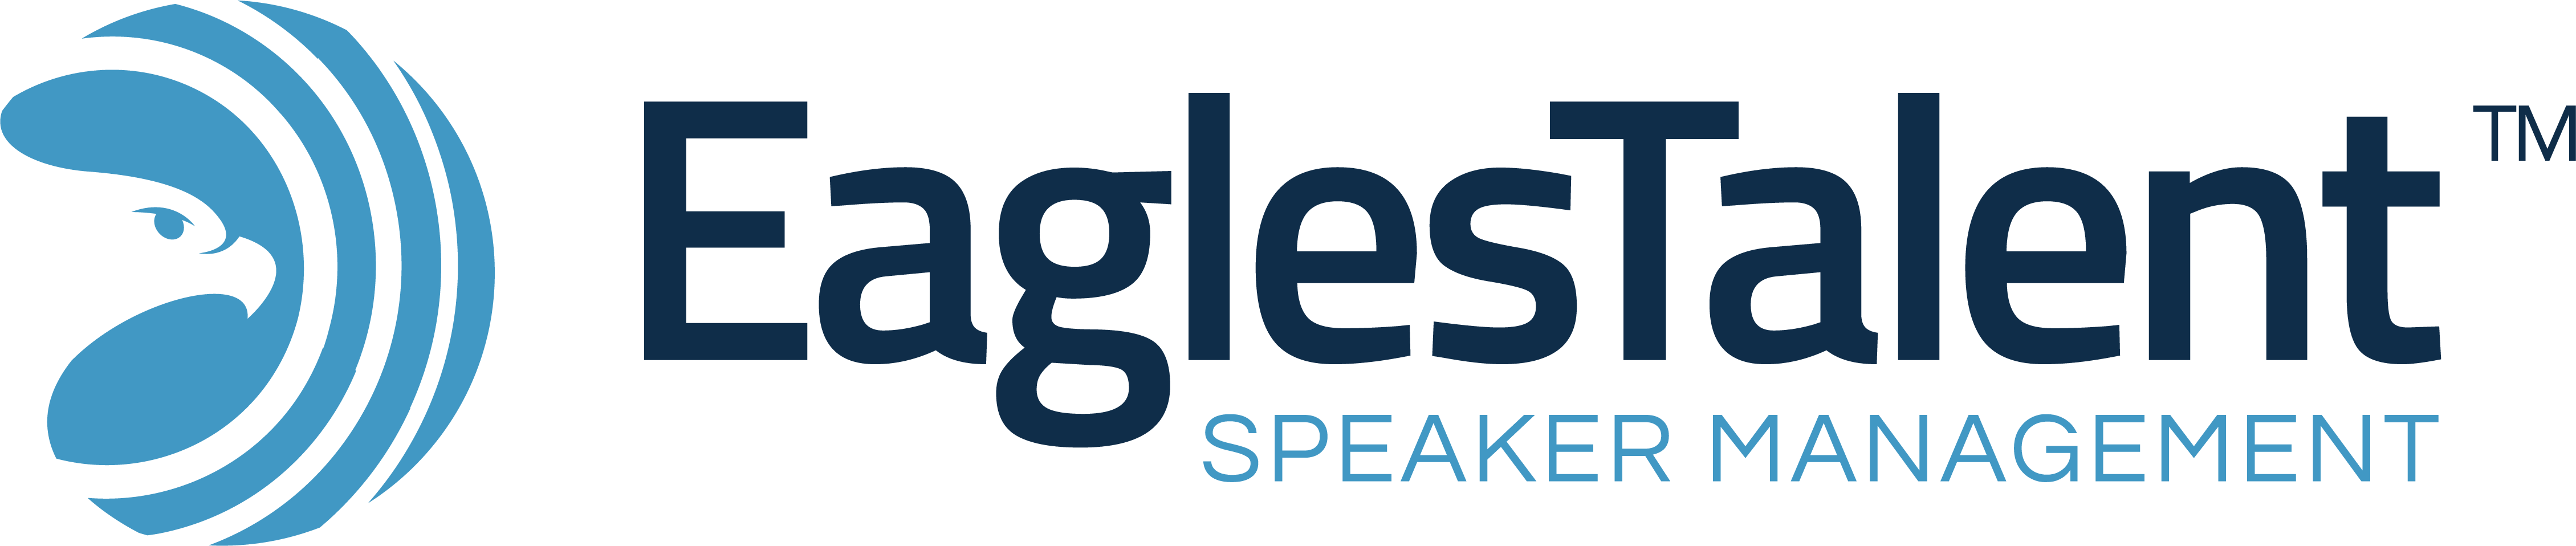 Eagles Talent Speaker Management Services, representation